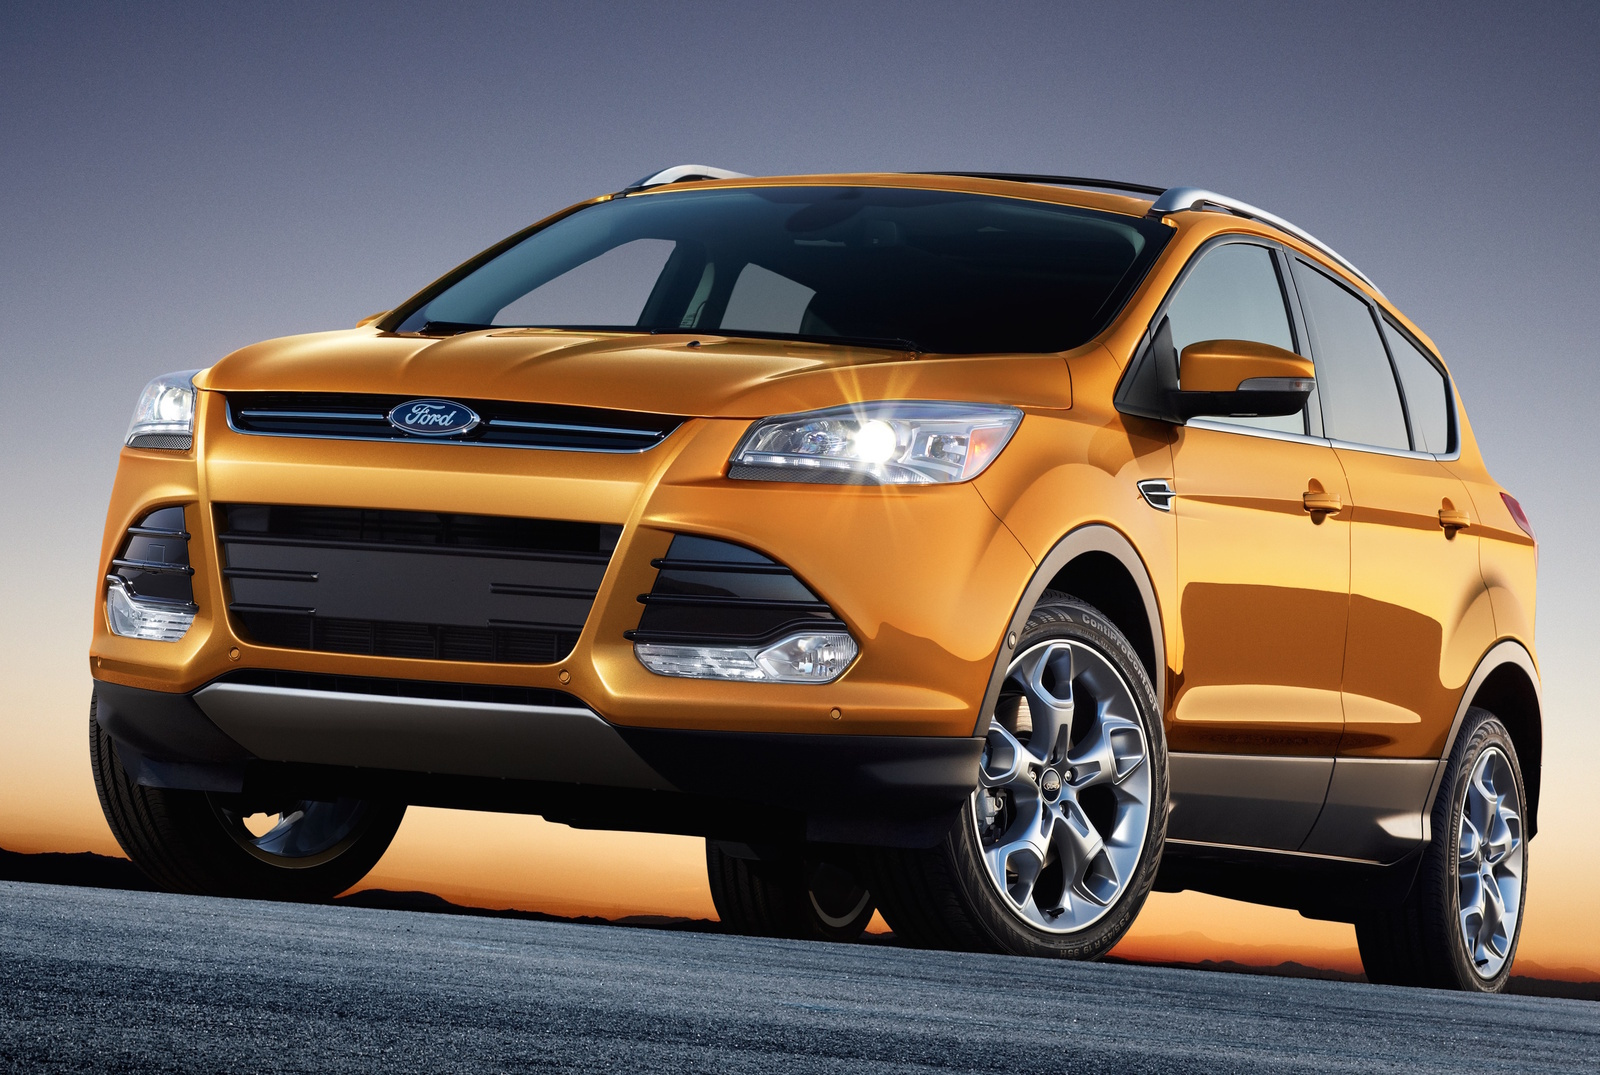 Ford Dealers In Md 2016 / 2017 Ford Escape for Sale in your area - CarGurus